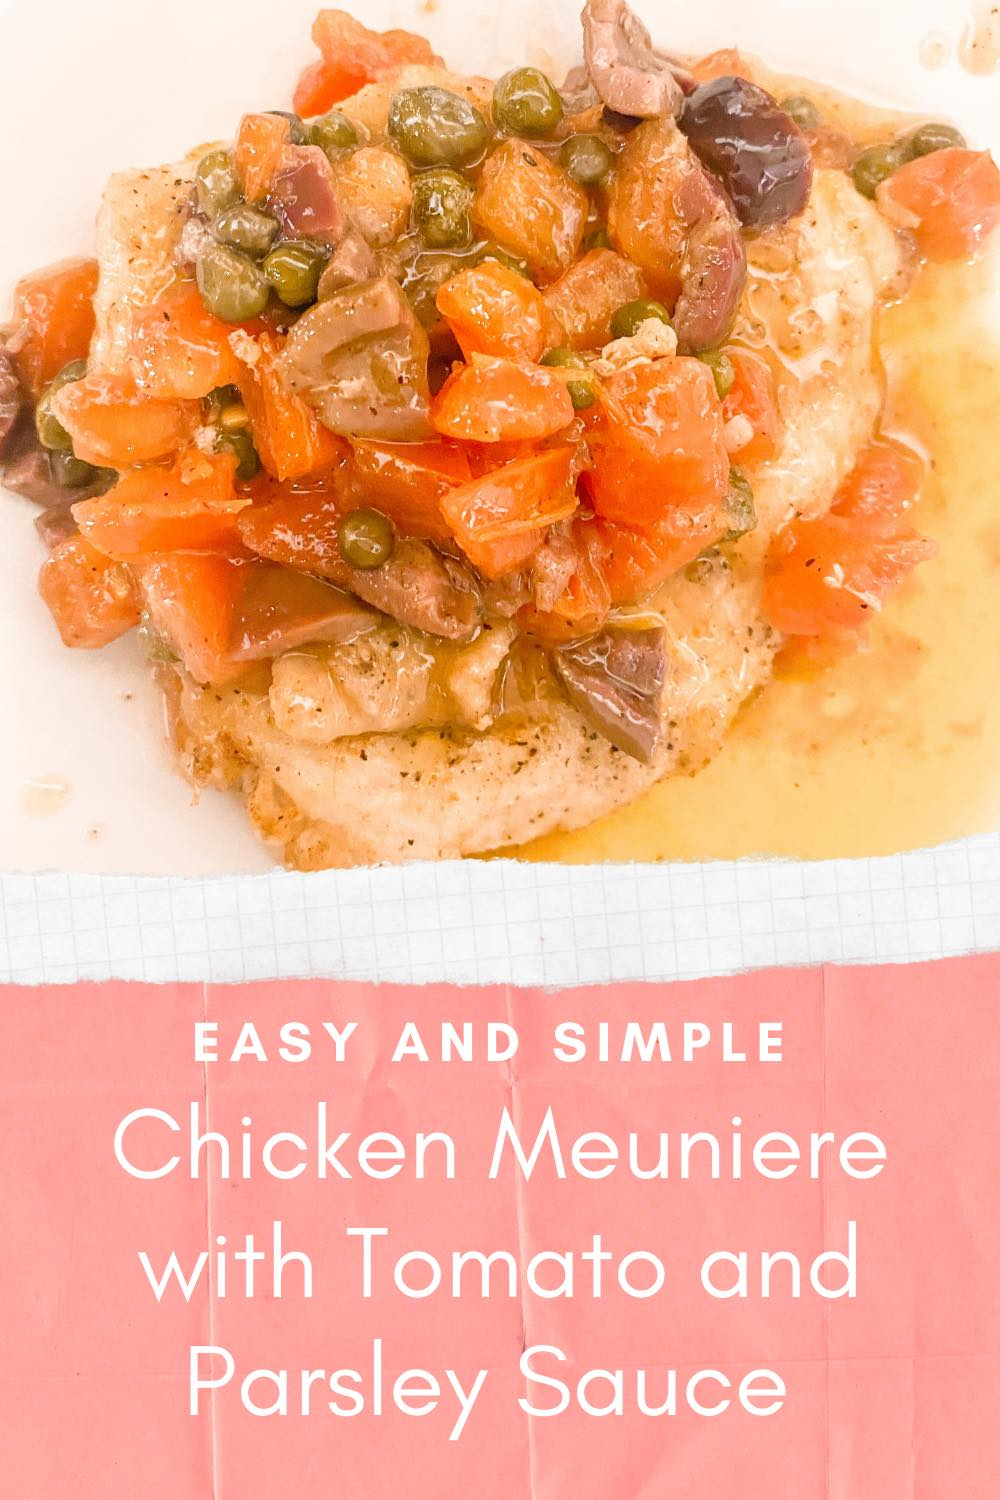 How to Make Chicken Meuniere with Tomato and Parsley Sauce